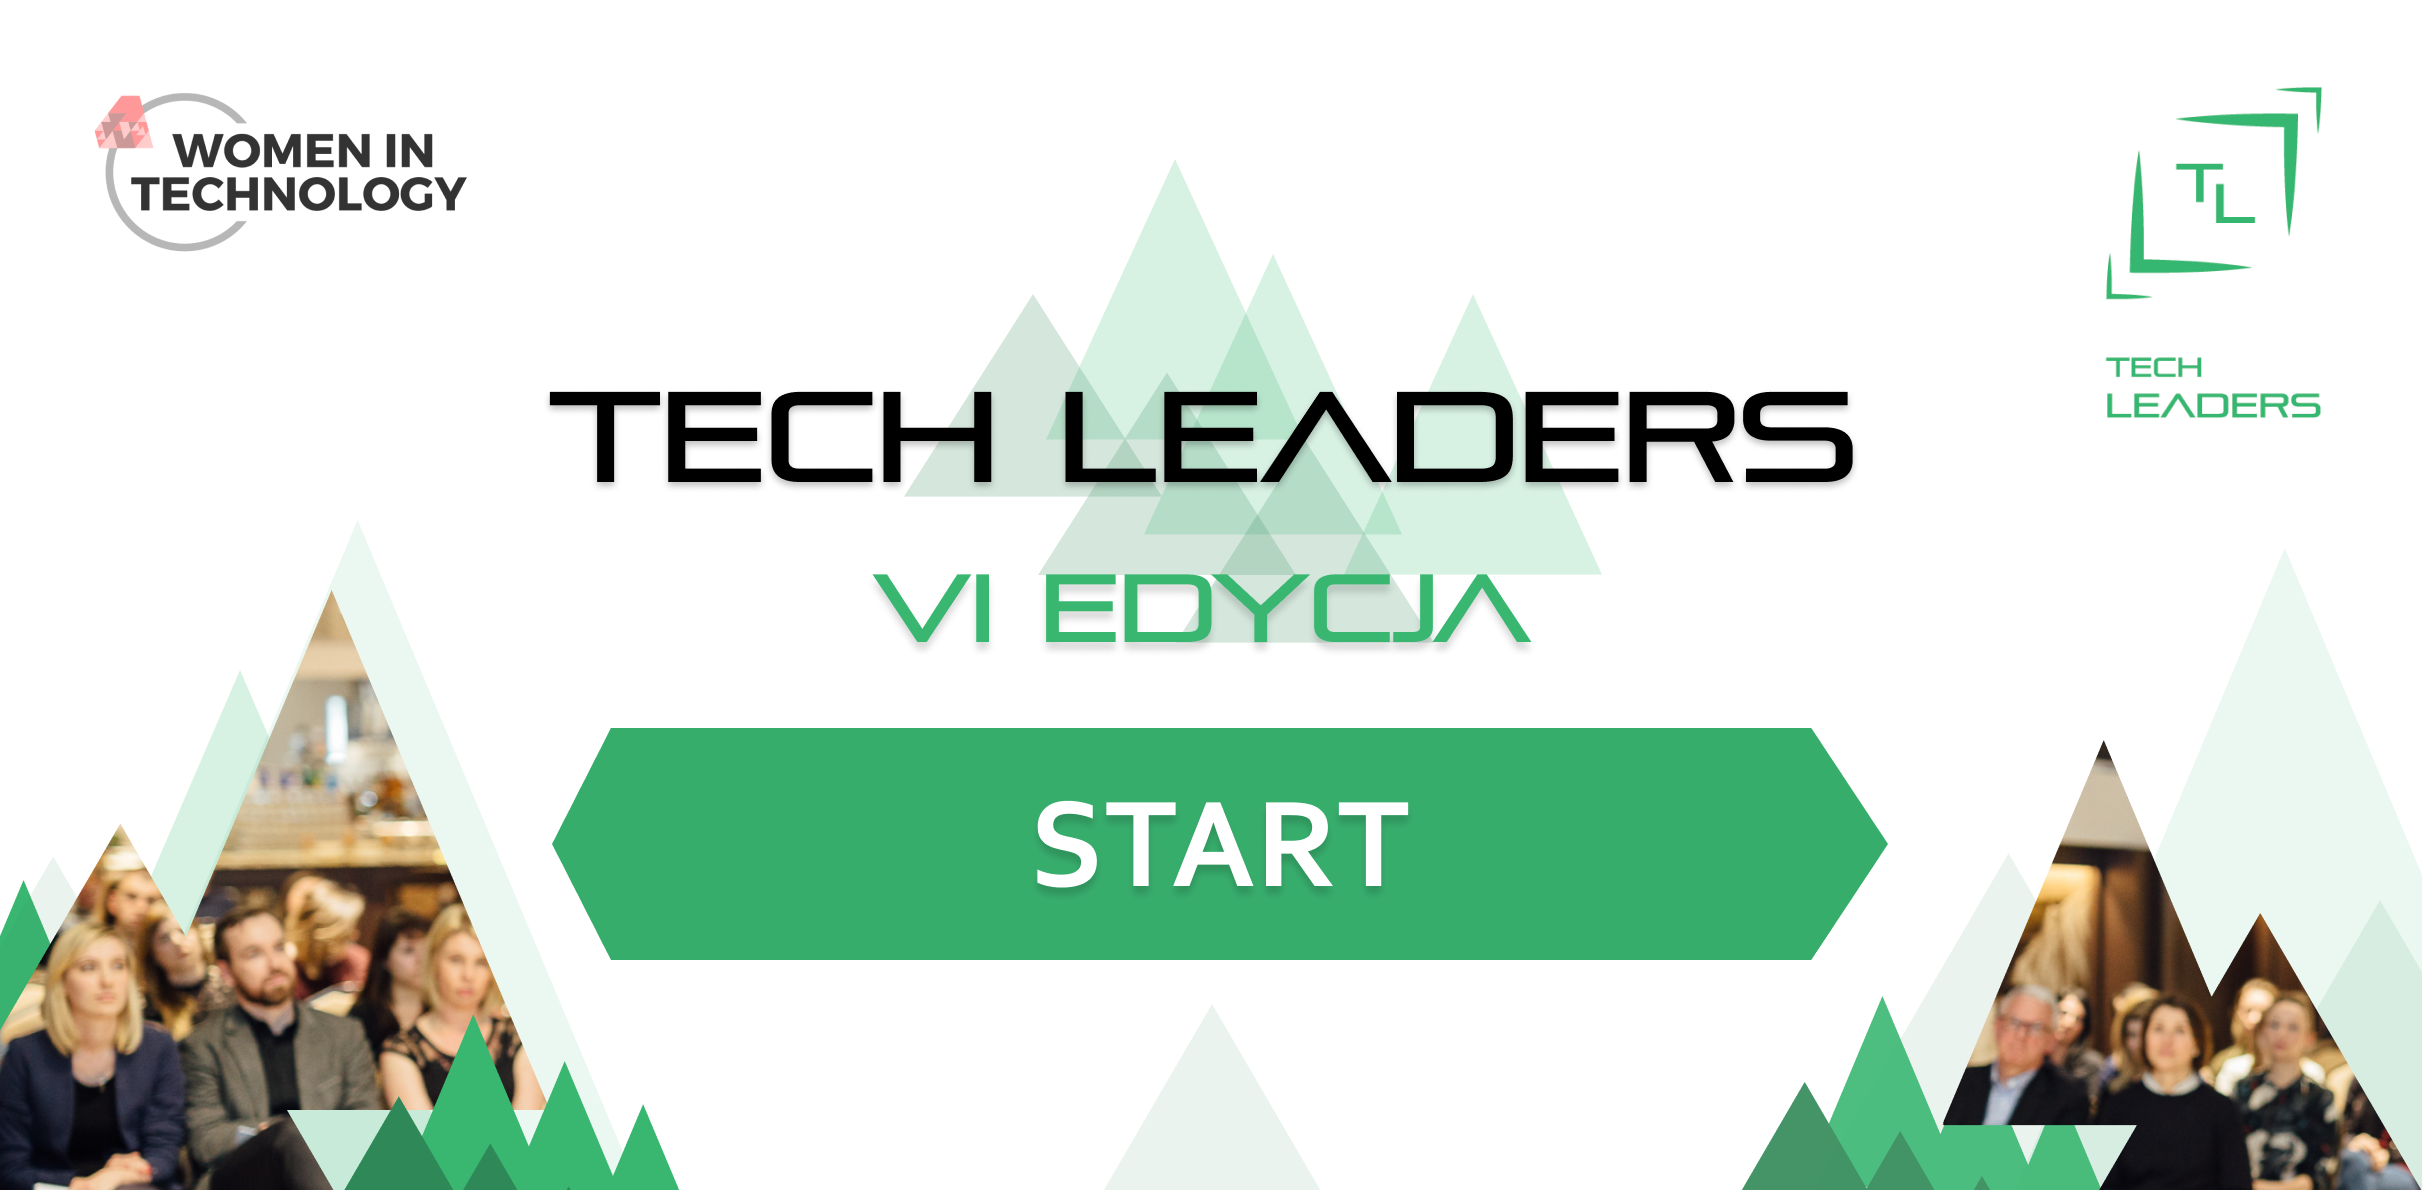 tech-leaders-vi-edycja-mentoring-kobiety-branza-it-grafika